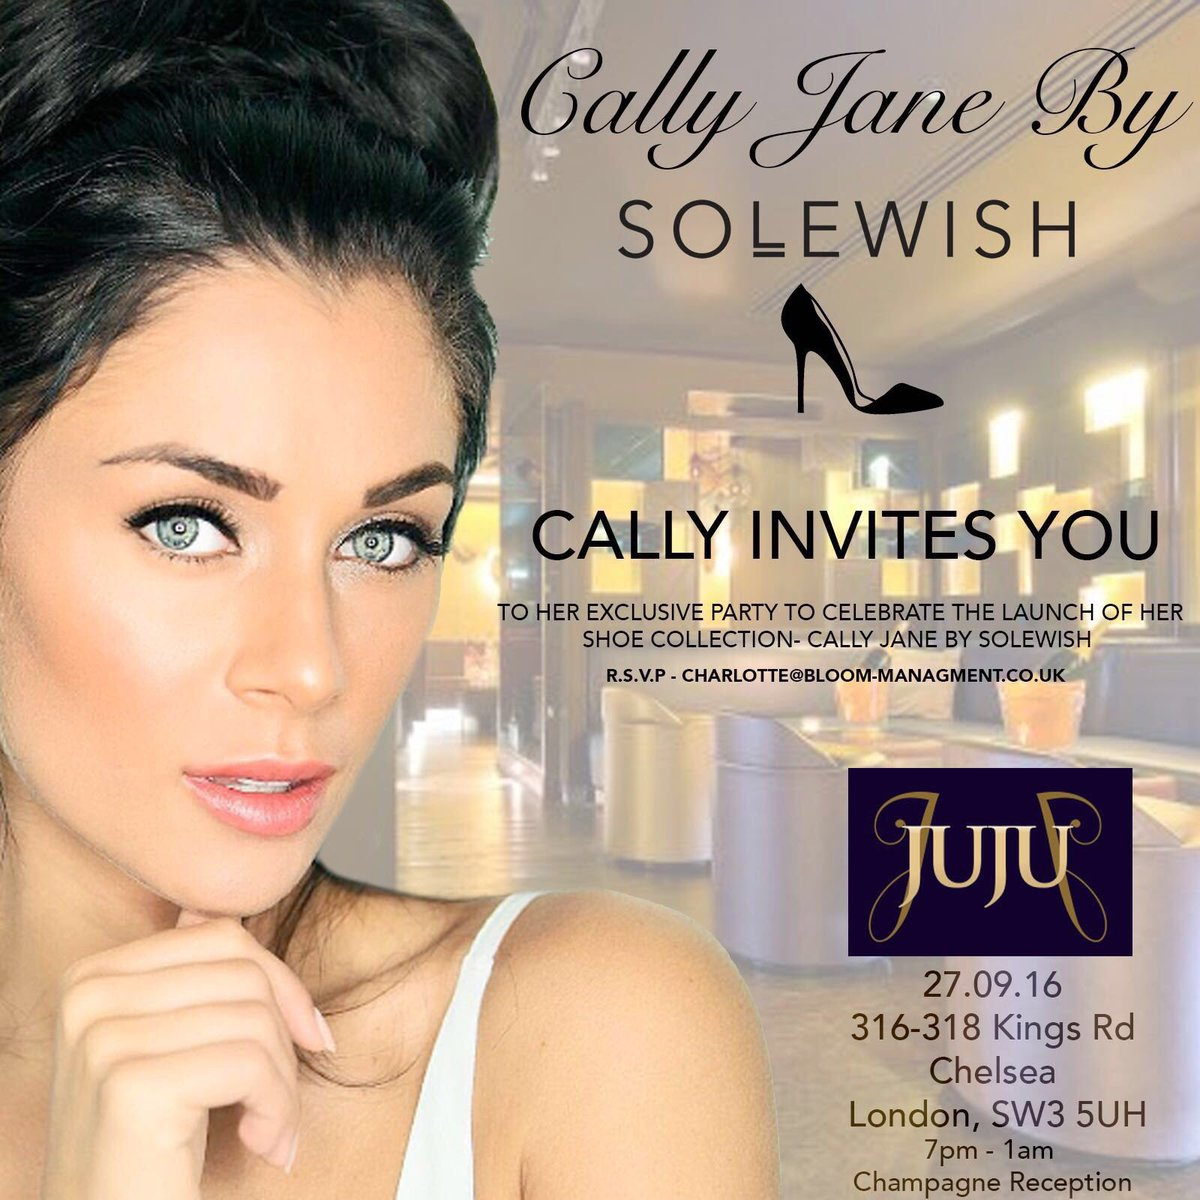 Looking forward to playing @JuJuKingsRoad for @MissCallyJane @collection_cj launch 👠Tonight at 10pm #SoleWish #JuJuChelsea 🎶🤘🏾